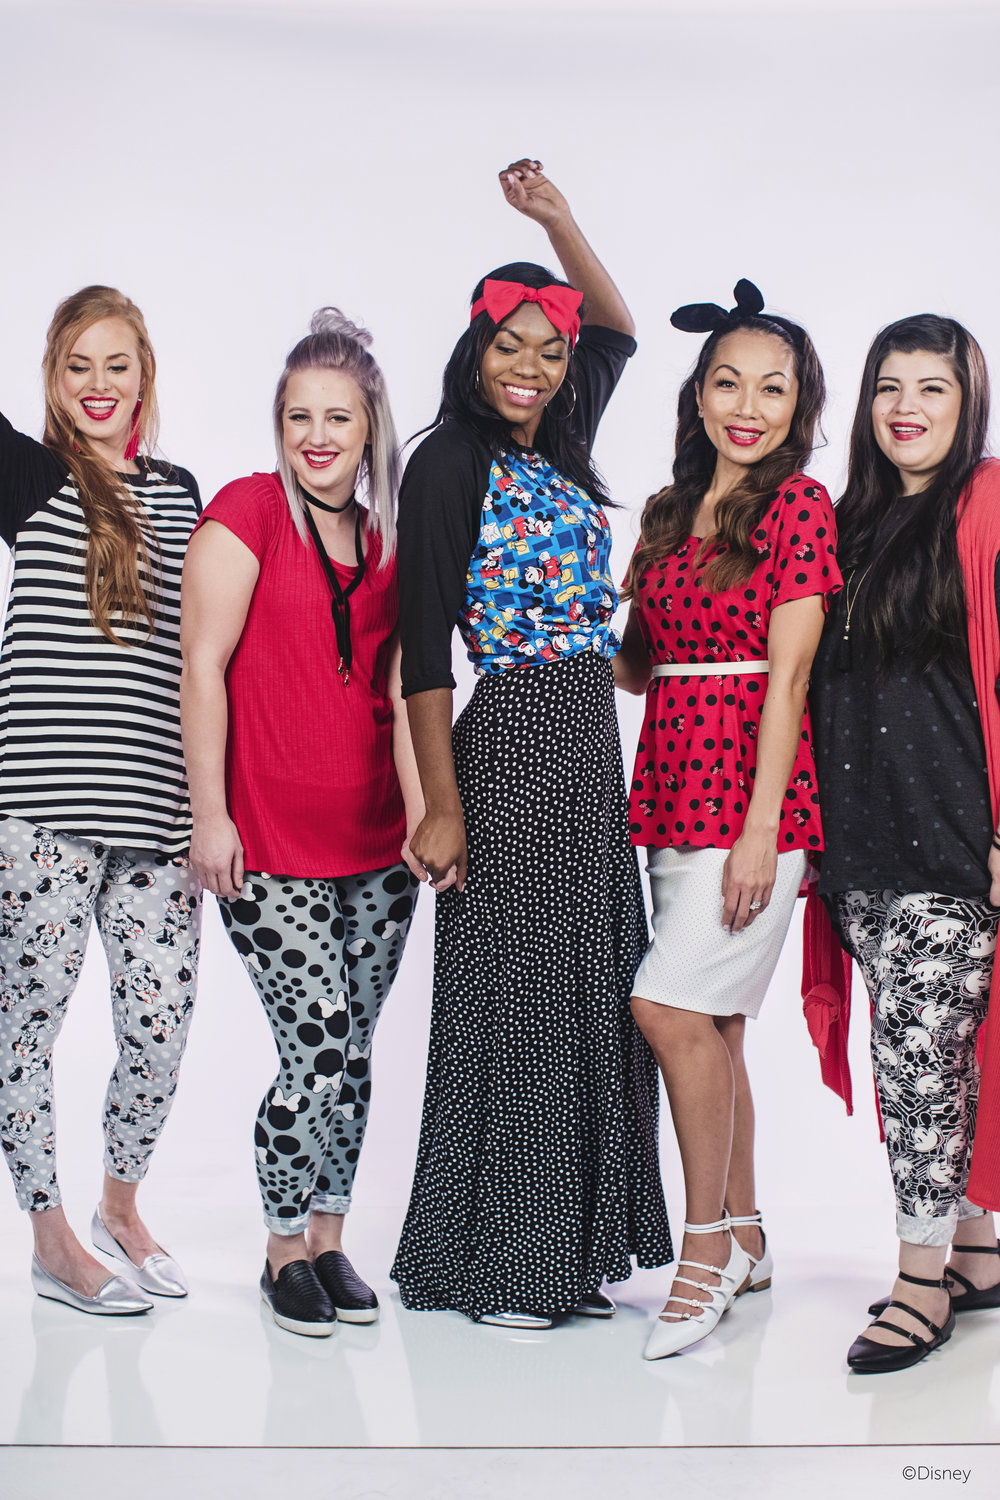 LuLaRoe-Collection-for-Disney-Photoshoot-June206.jpg